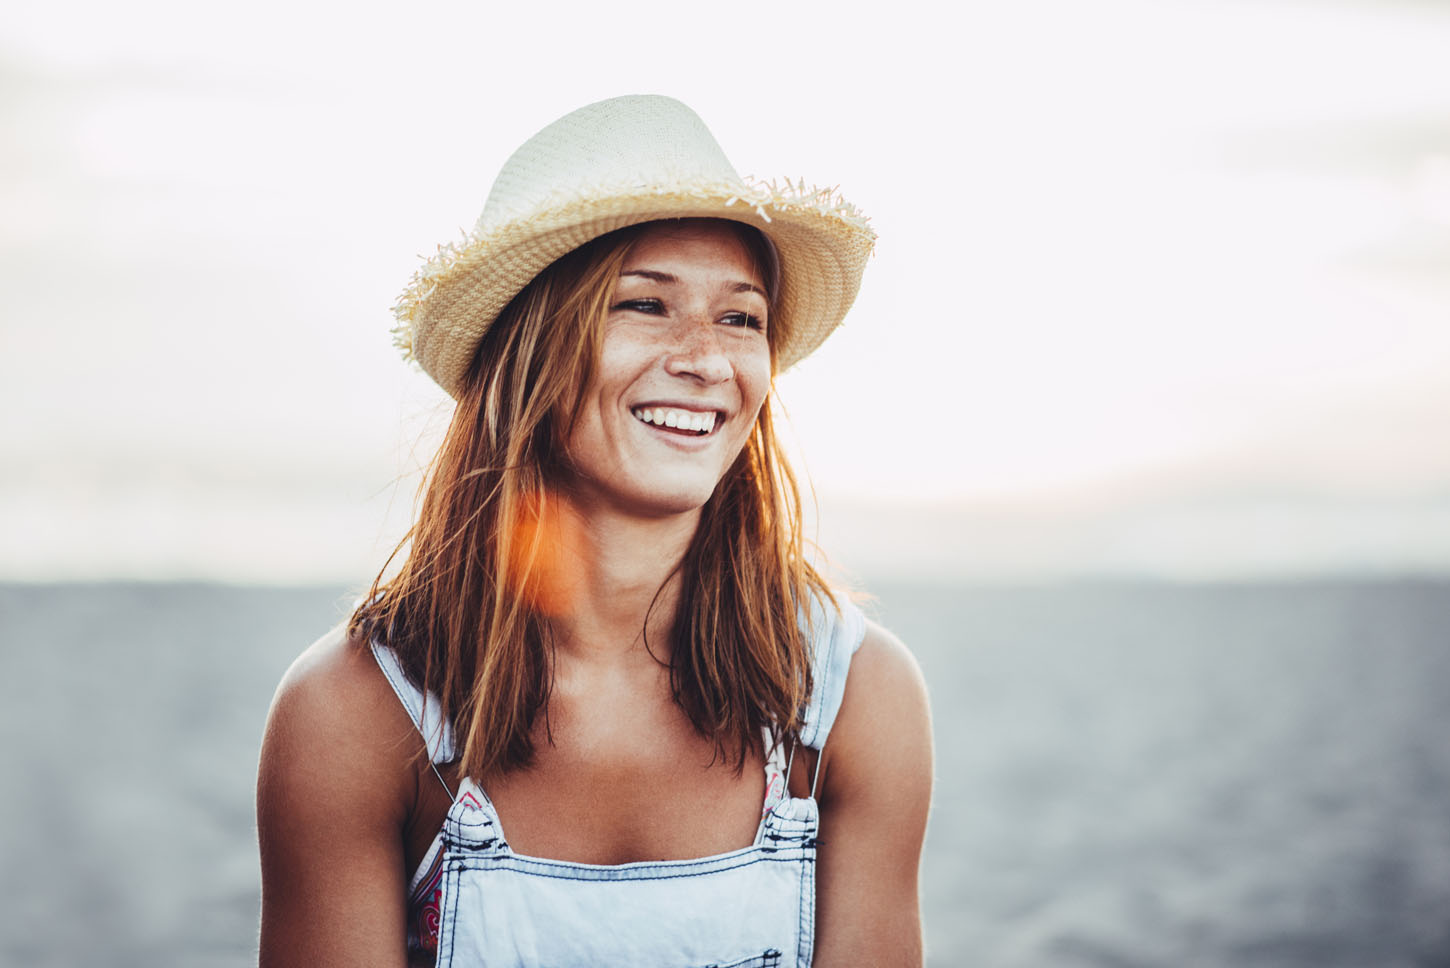 Girl with the hat smiling to the sun.